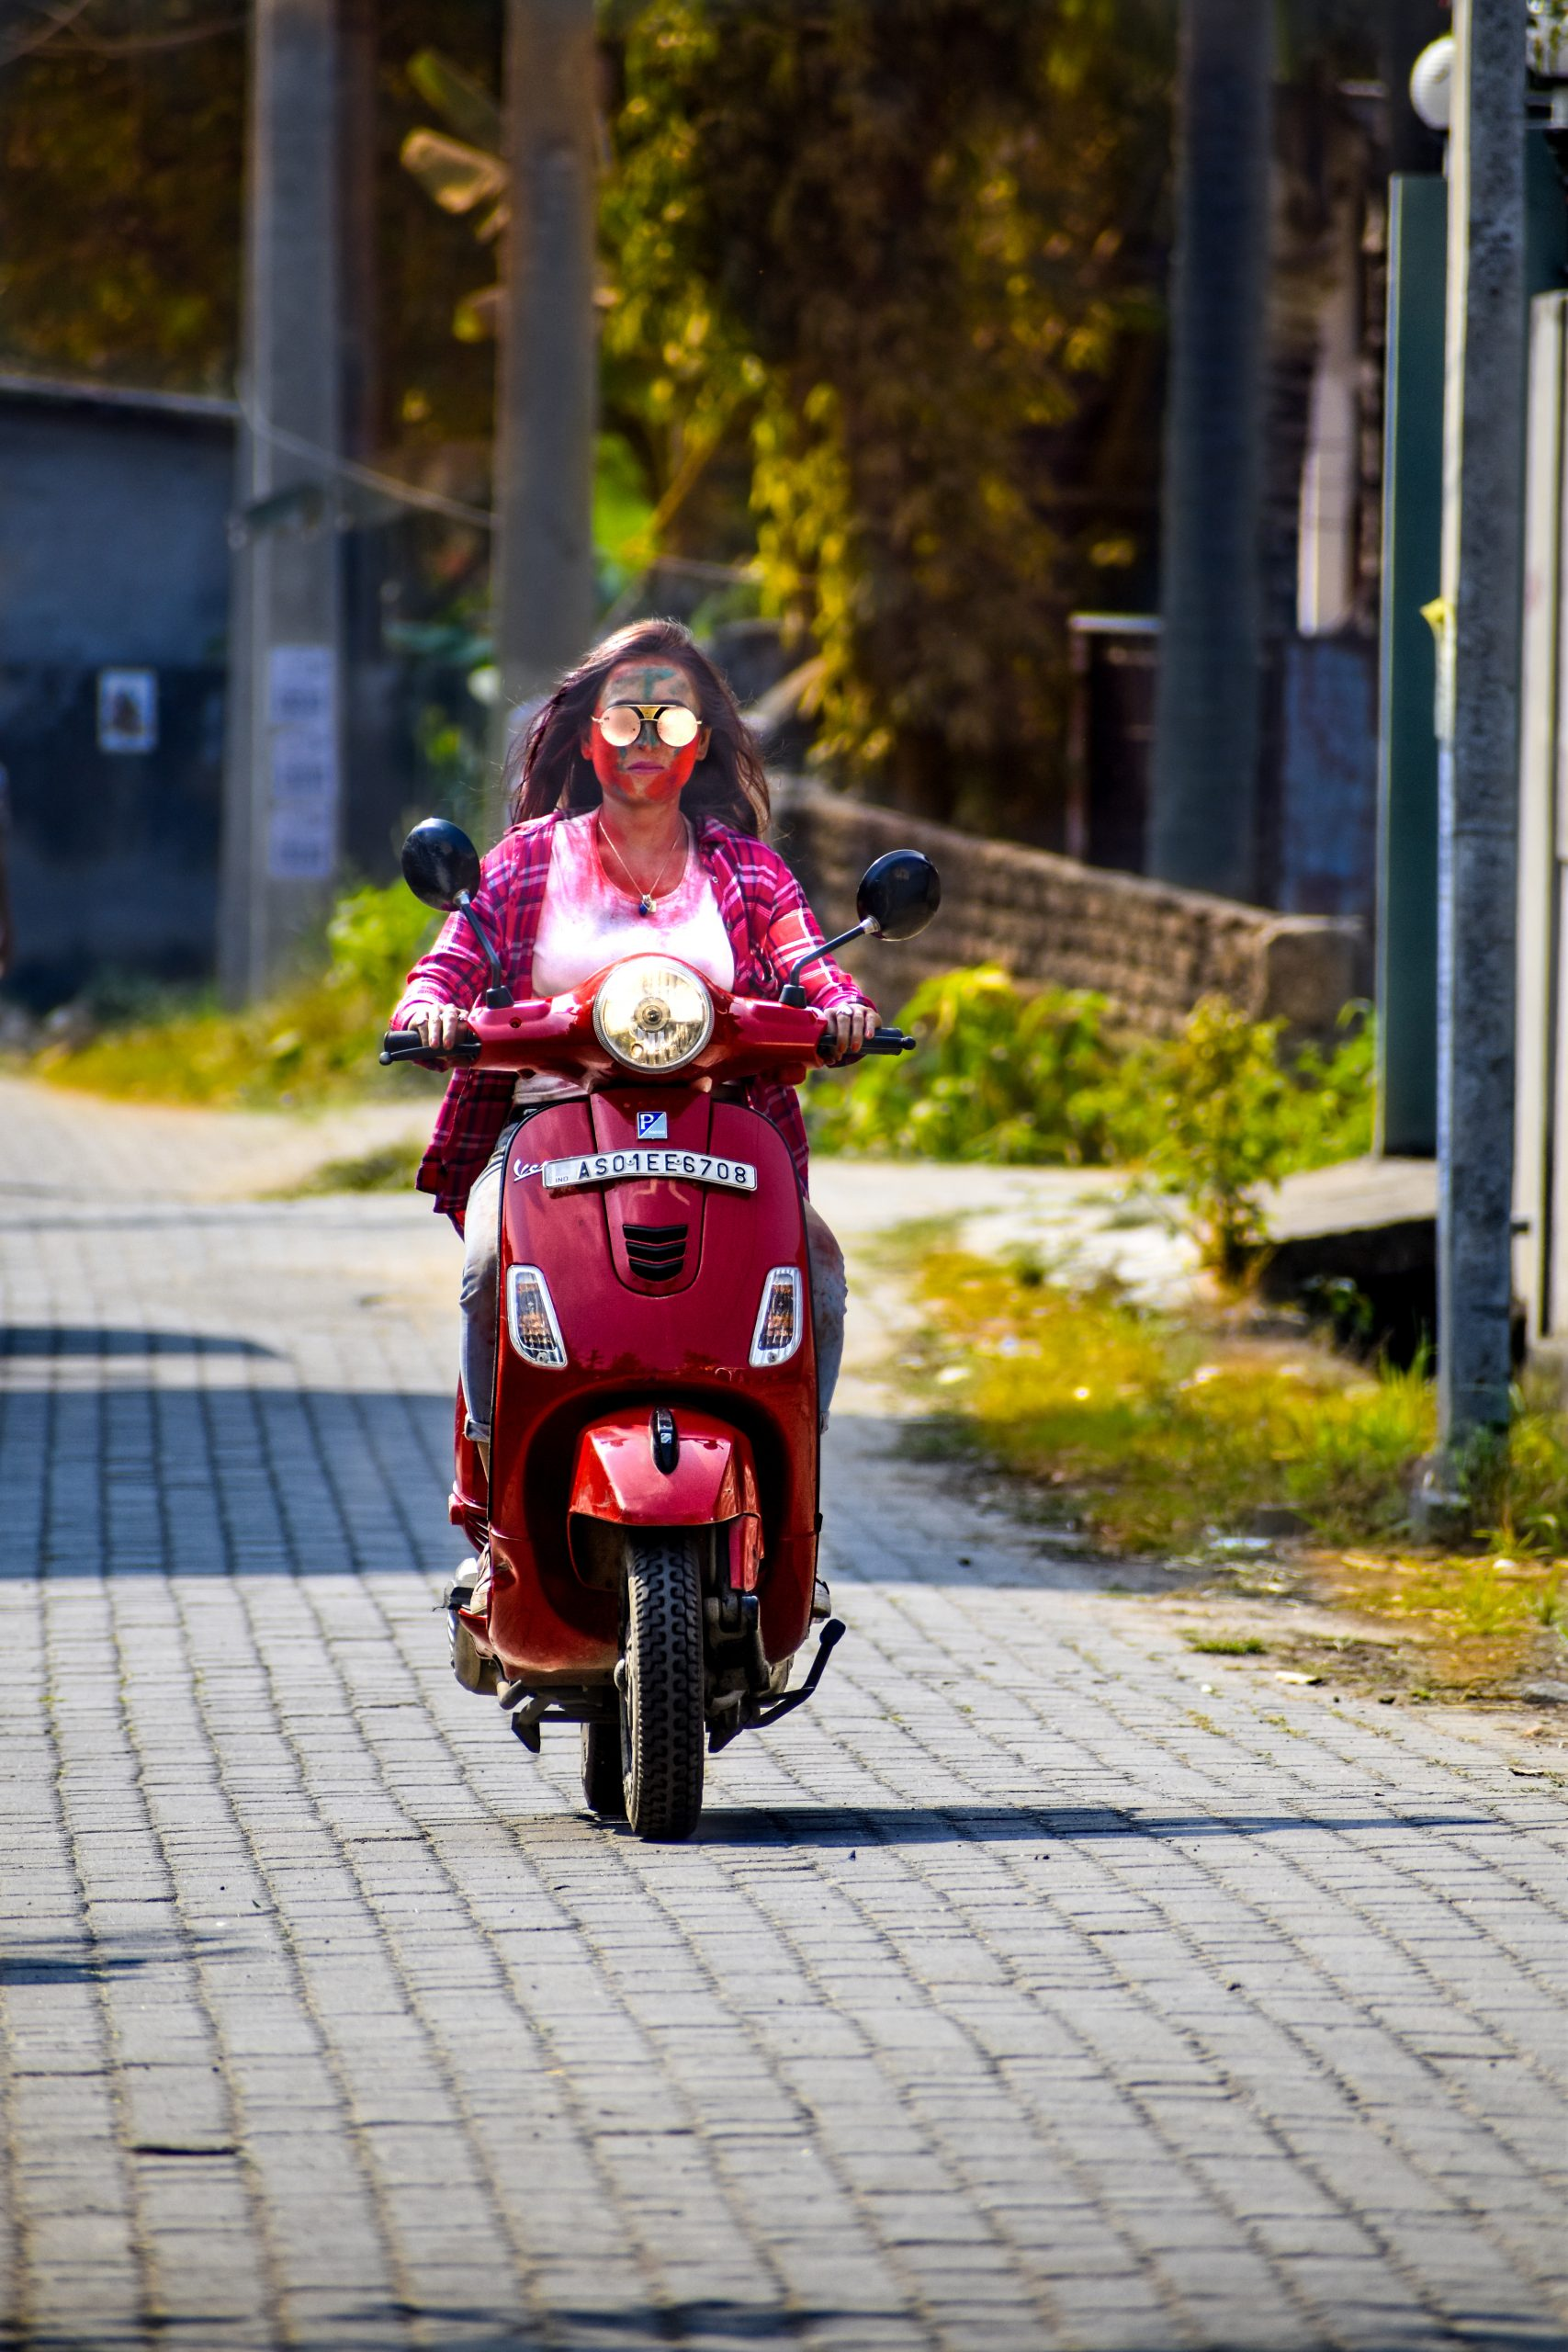 A girl driving a scooter